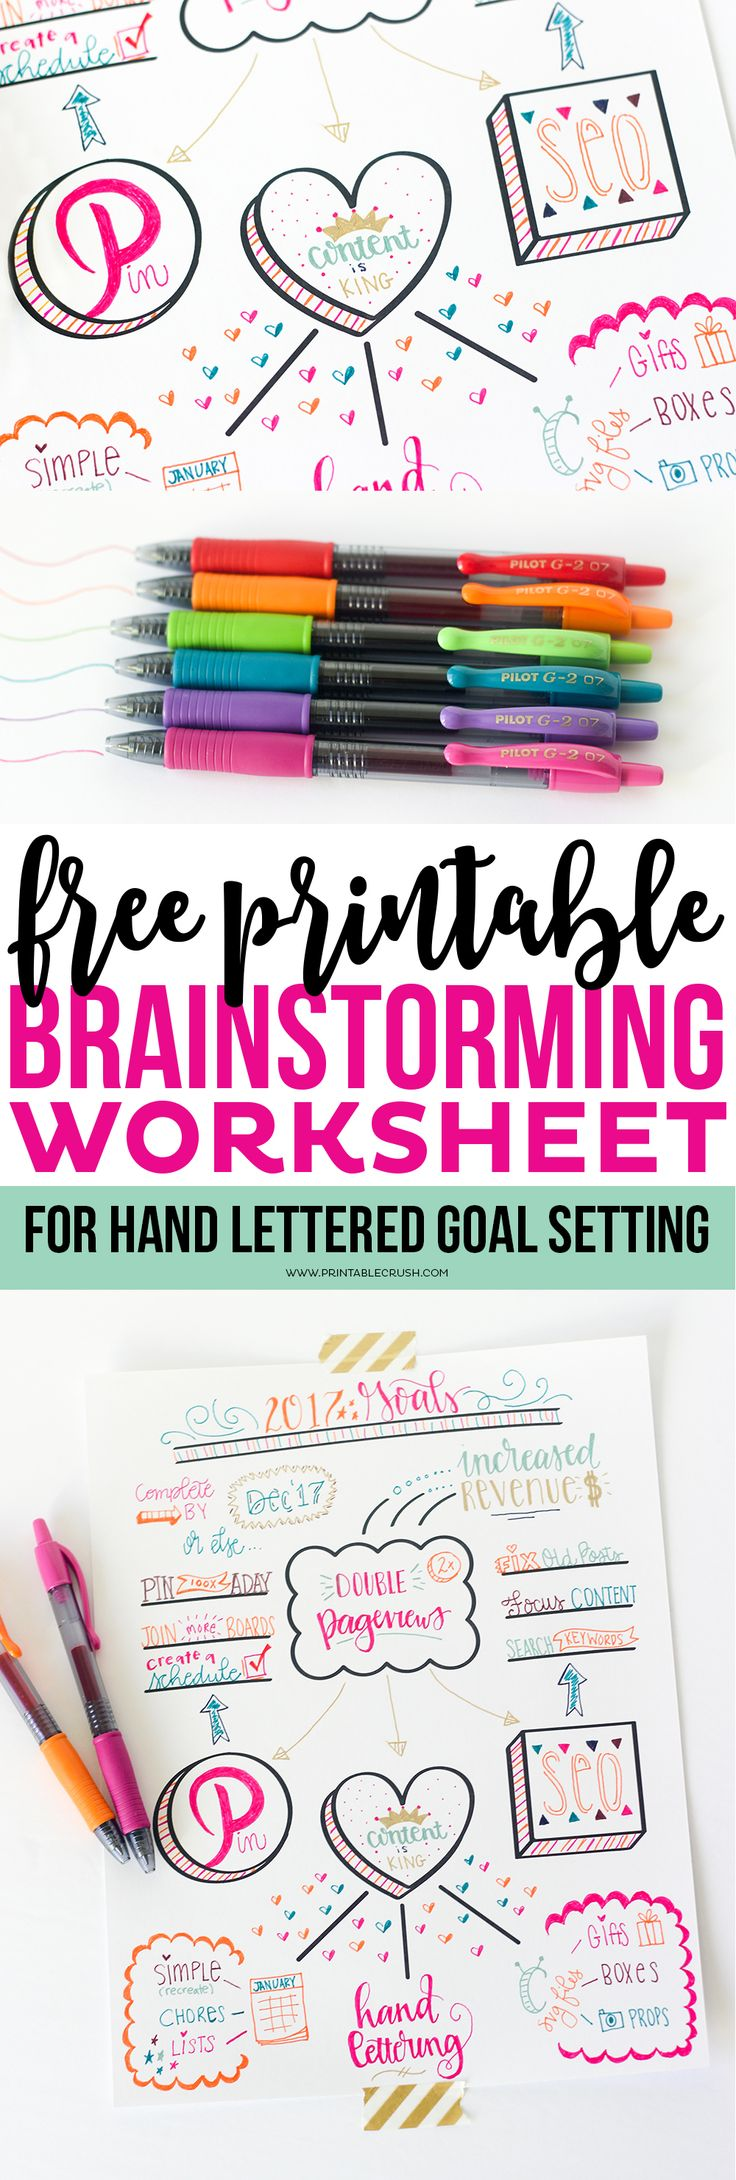 Make goal setting fun with this FREE Printable Hand Lettered Goal Setting Worksheet! Create art that's functional and beautiful with the Pilot Pen collection. DoYouG2 AD